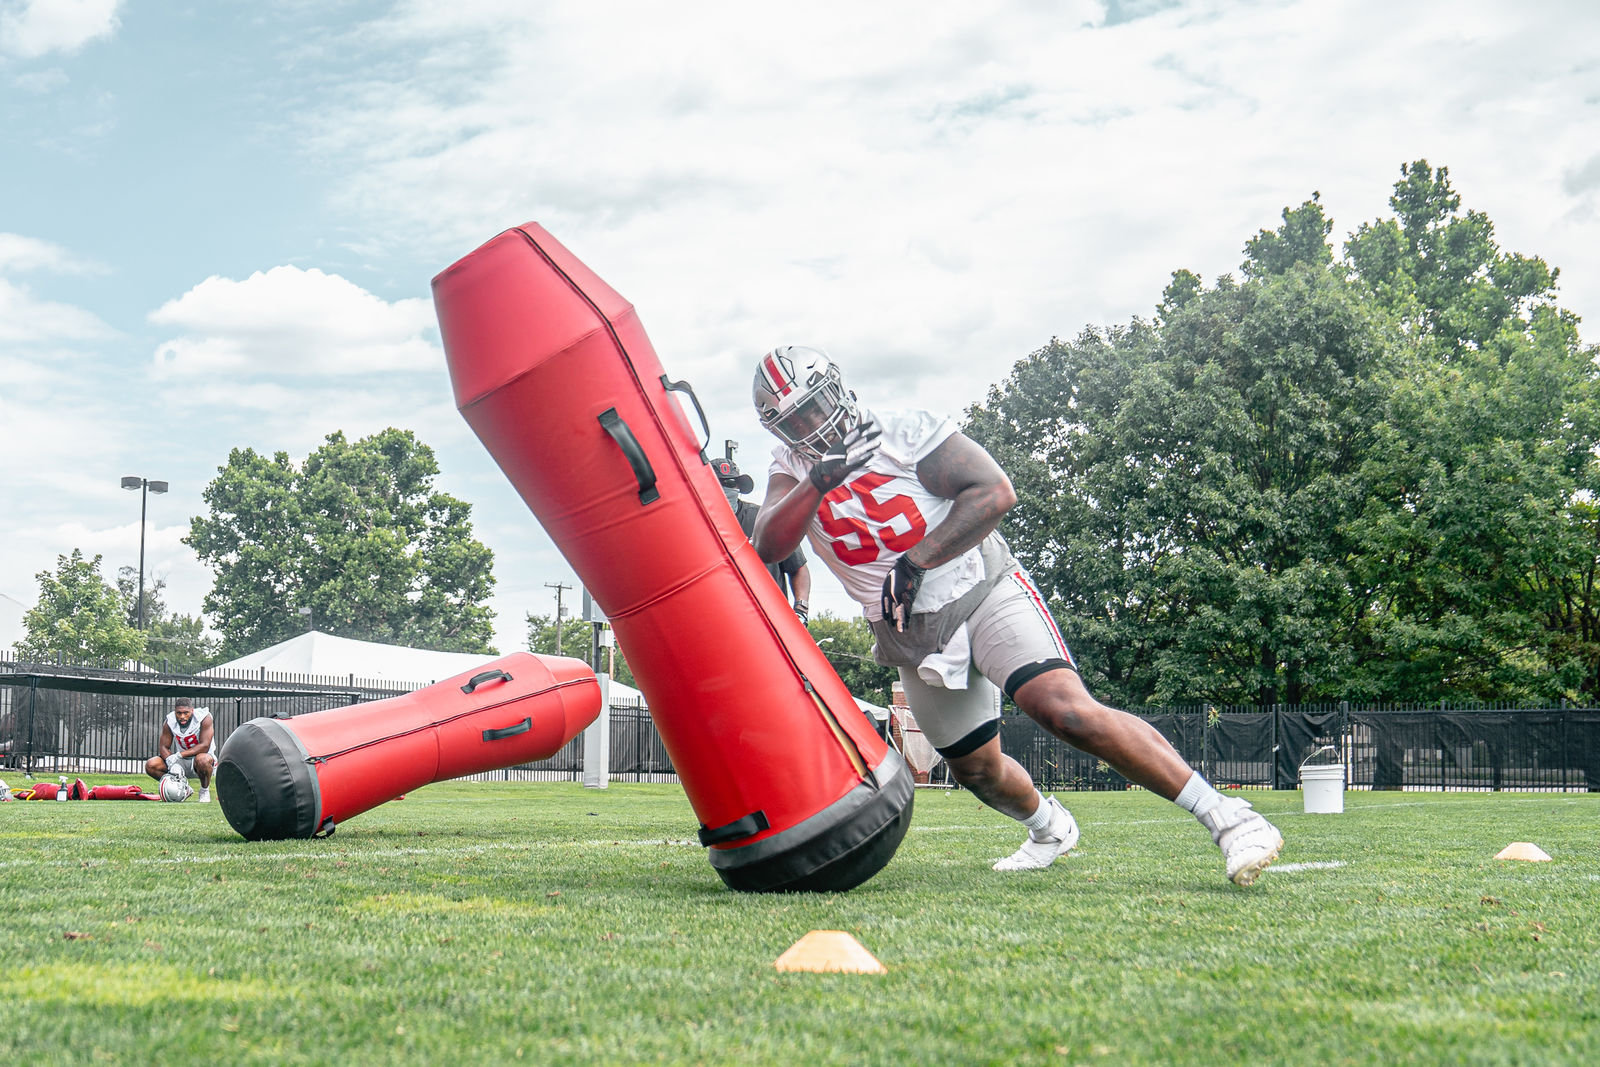 Ohio State football practice on August 6, 2020. (Courtesy: The Ohio State Department of Athletics)